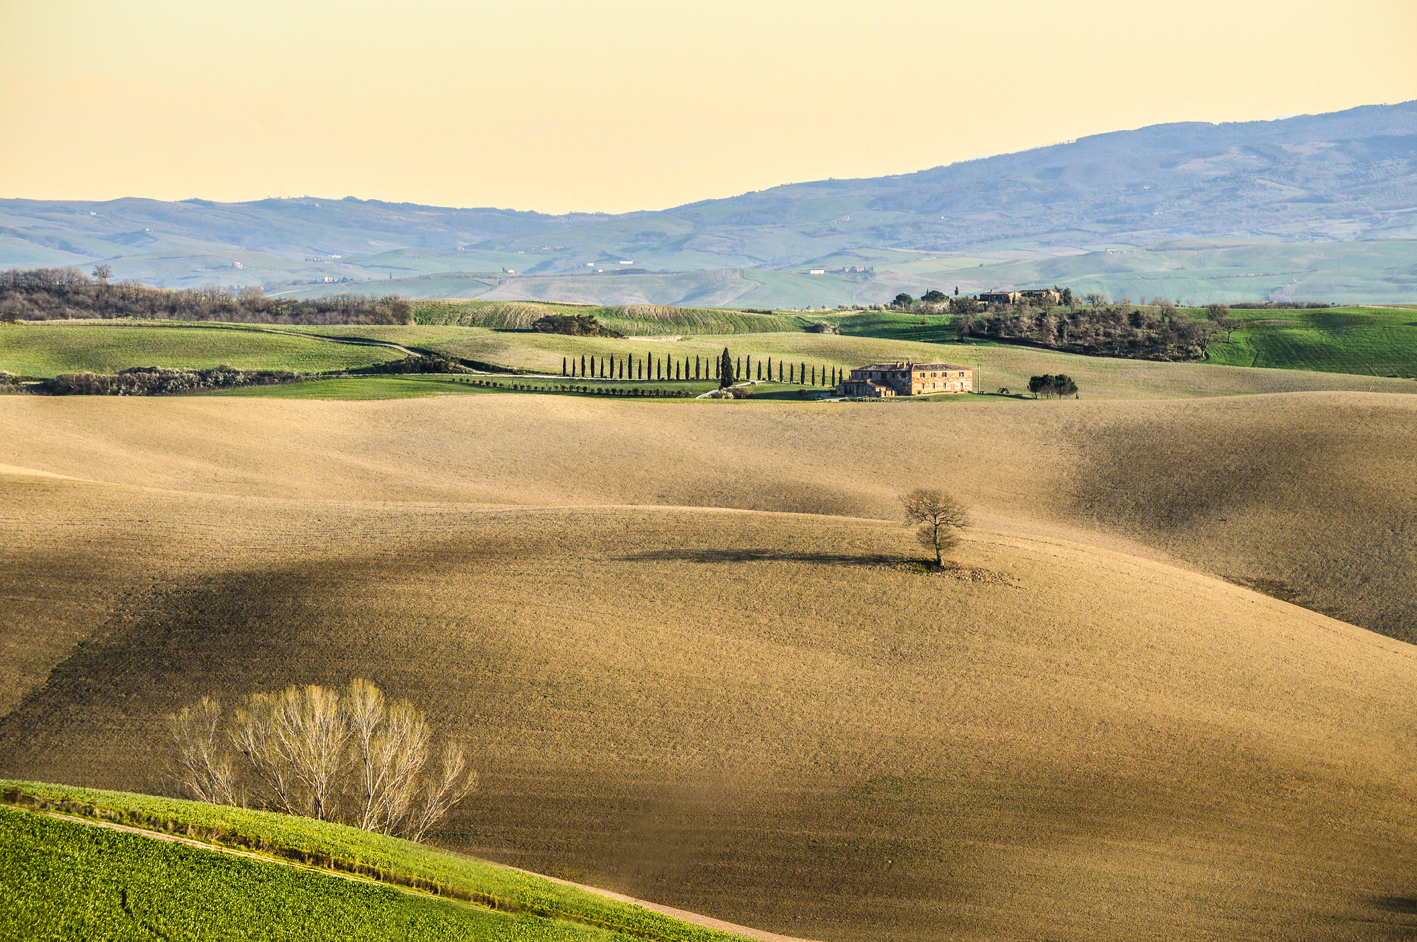 114 #WhereToGo : Val d'Orcia in Tuscany